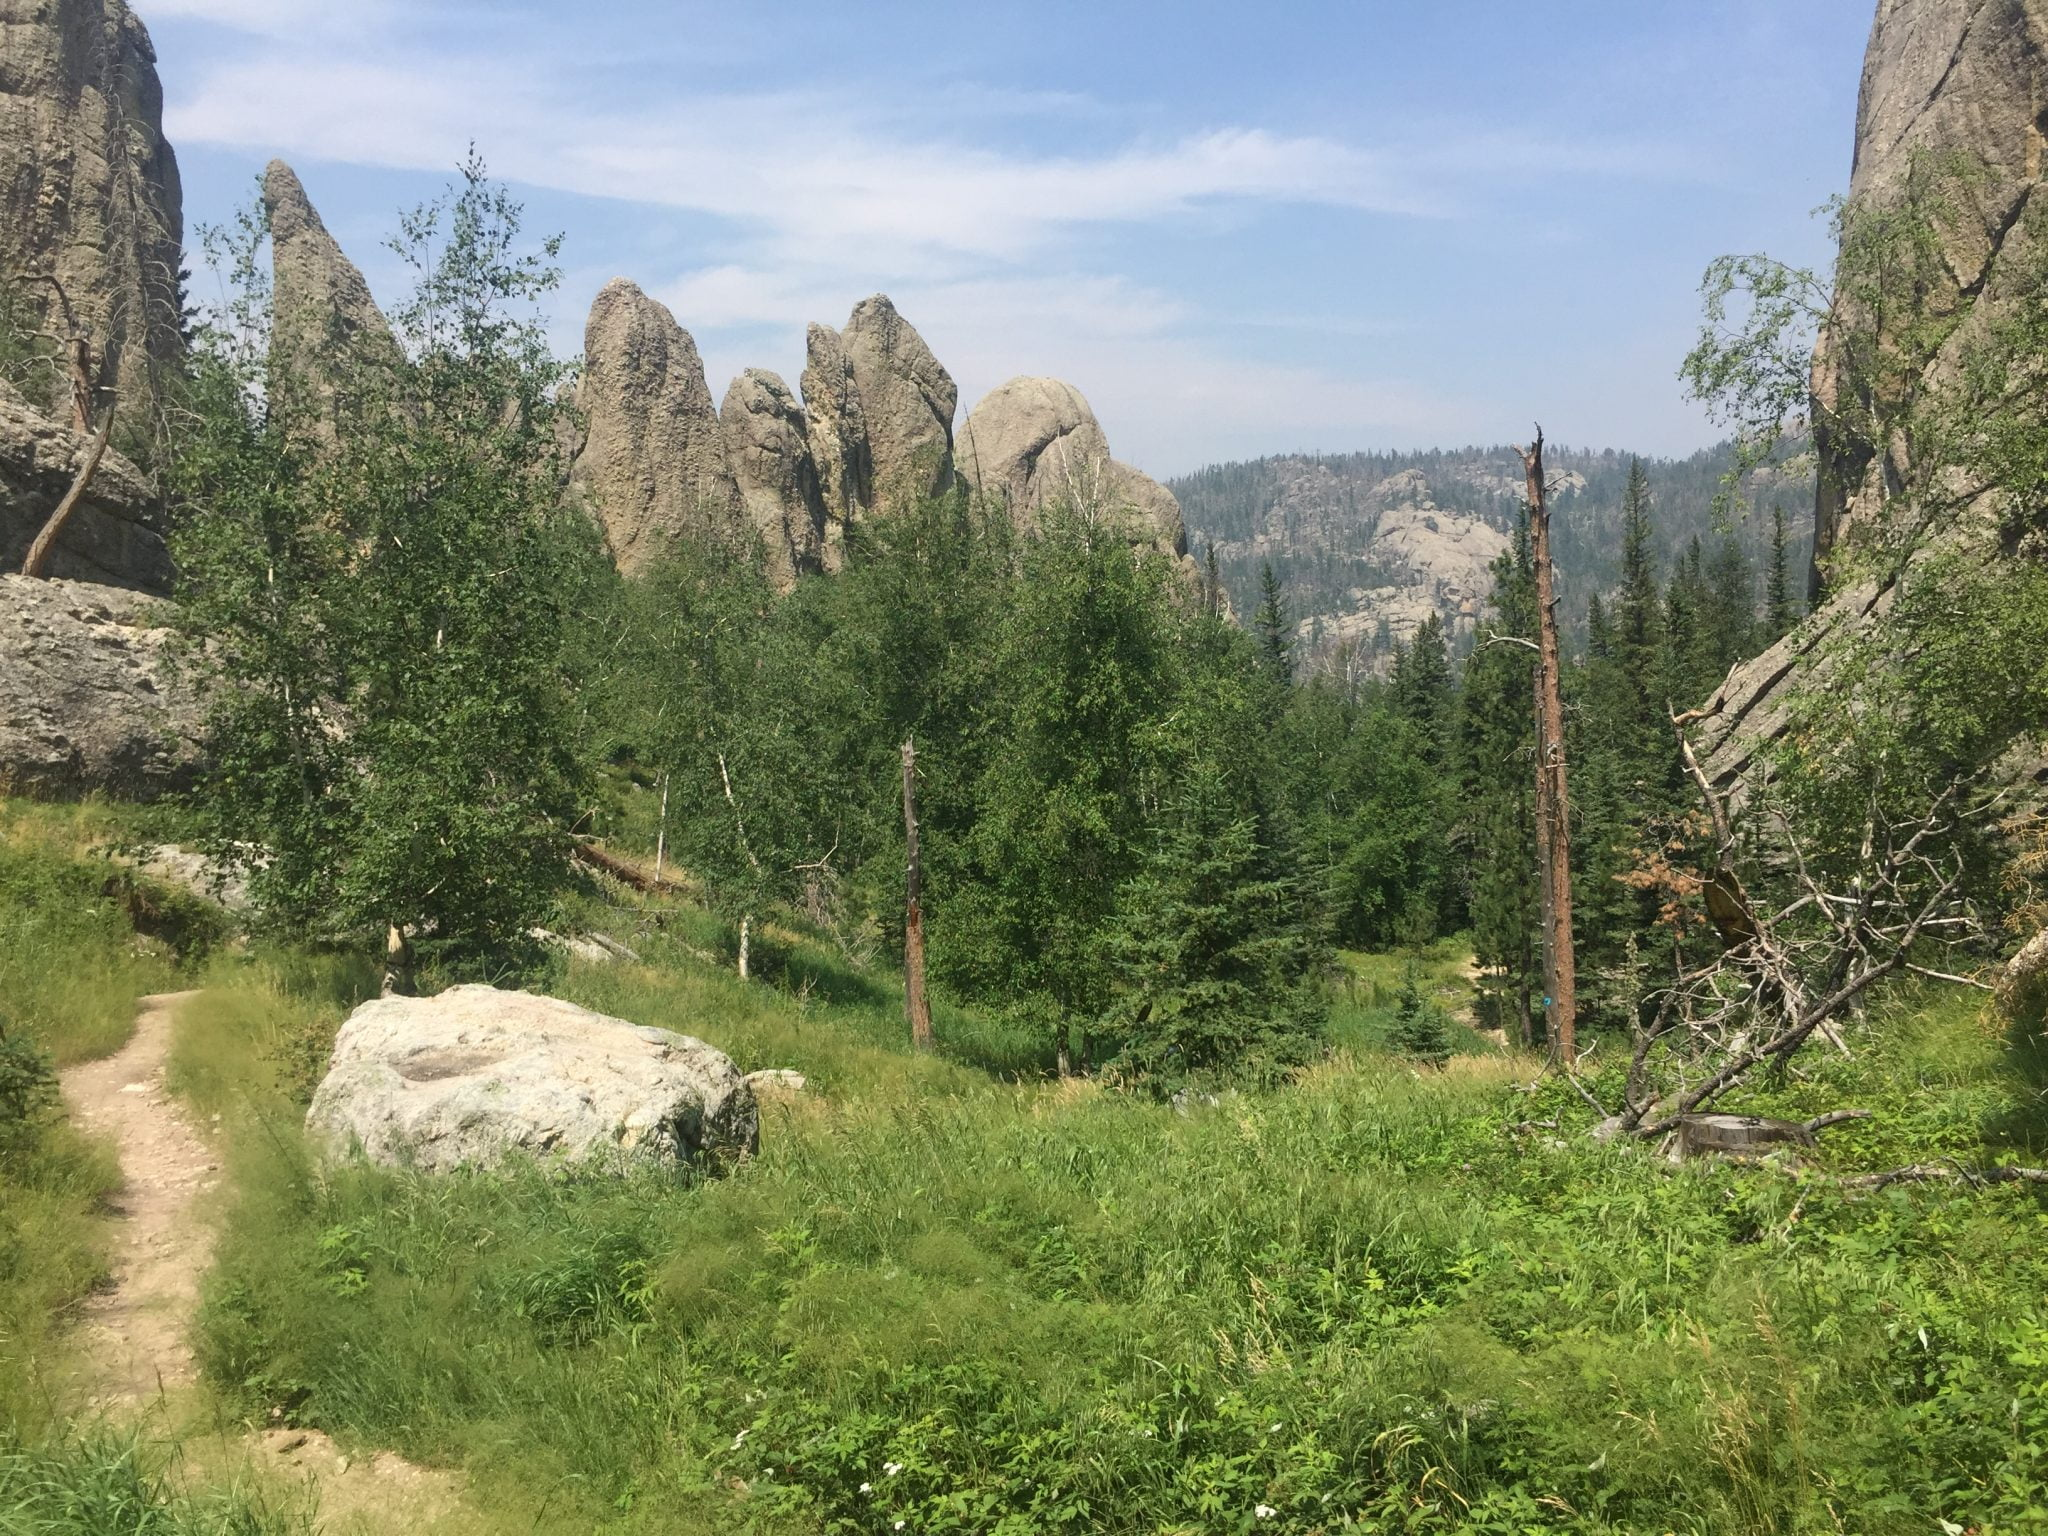 The Sunday Gulch Trail located in the Black Hills of South Dakota